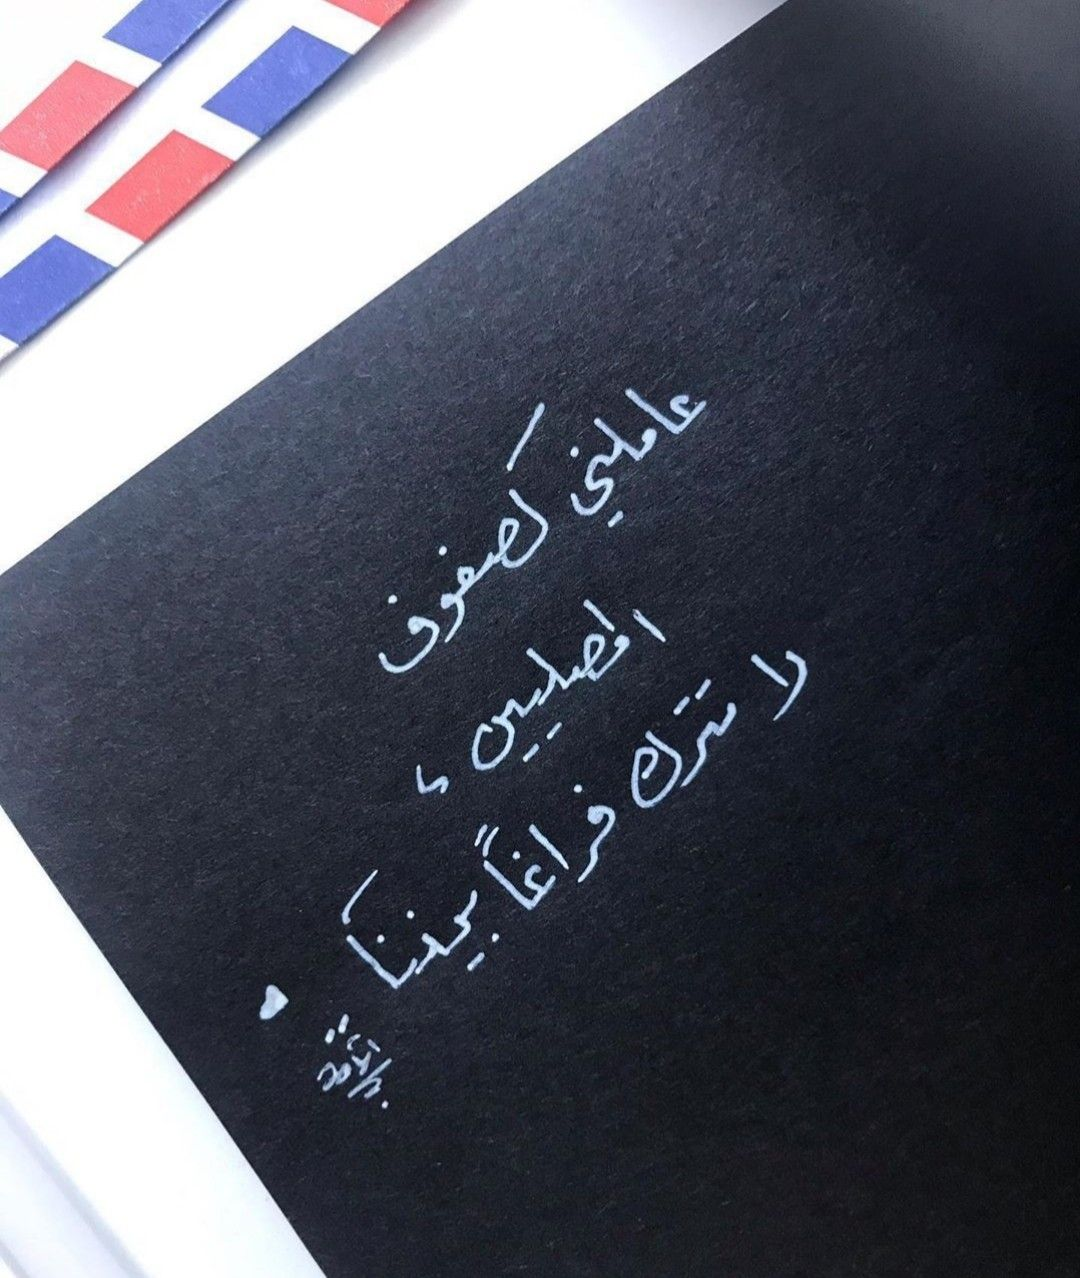 Pin By Larsa Saad On راق لي Arabic Quotes Notebook Embroidery